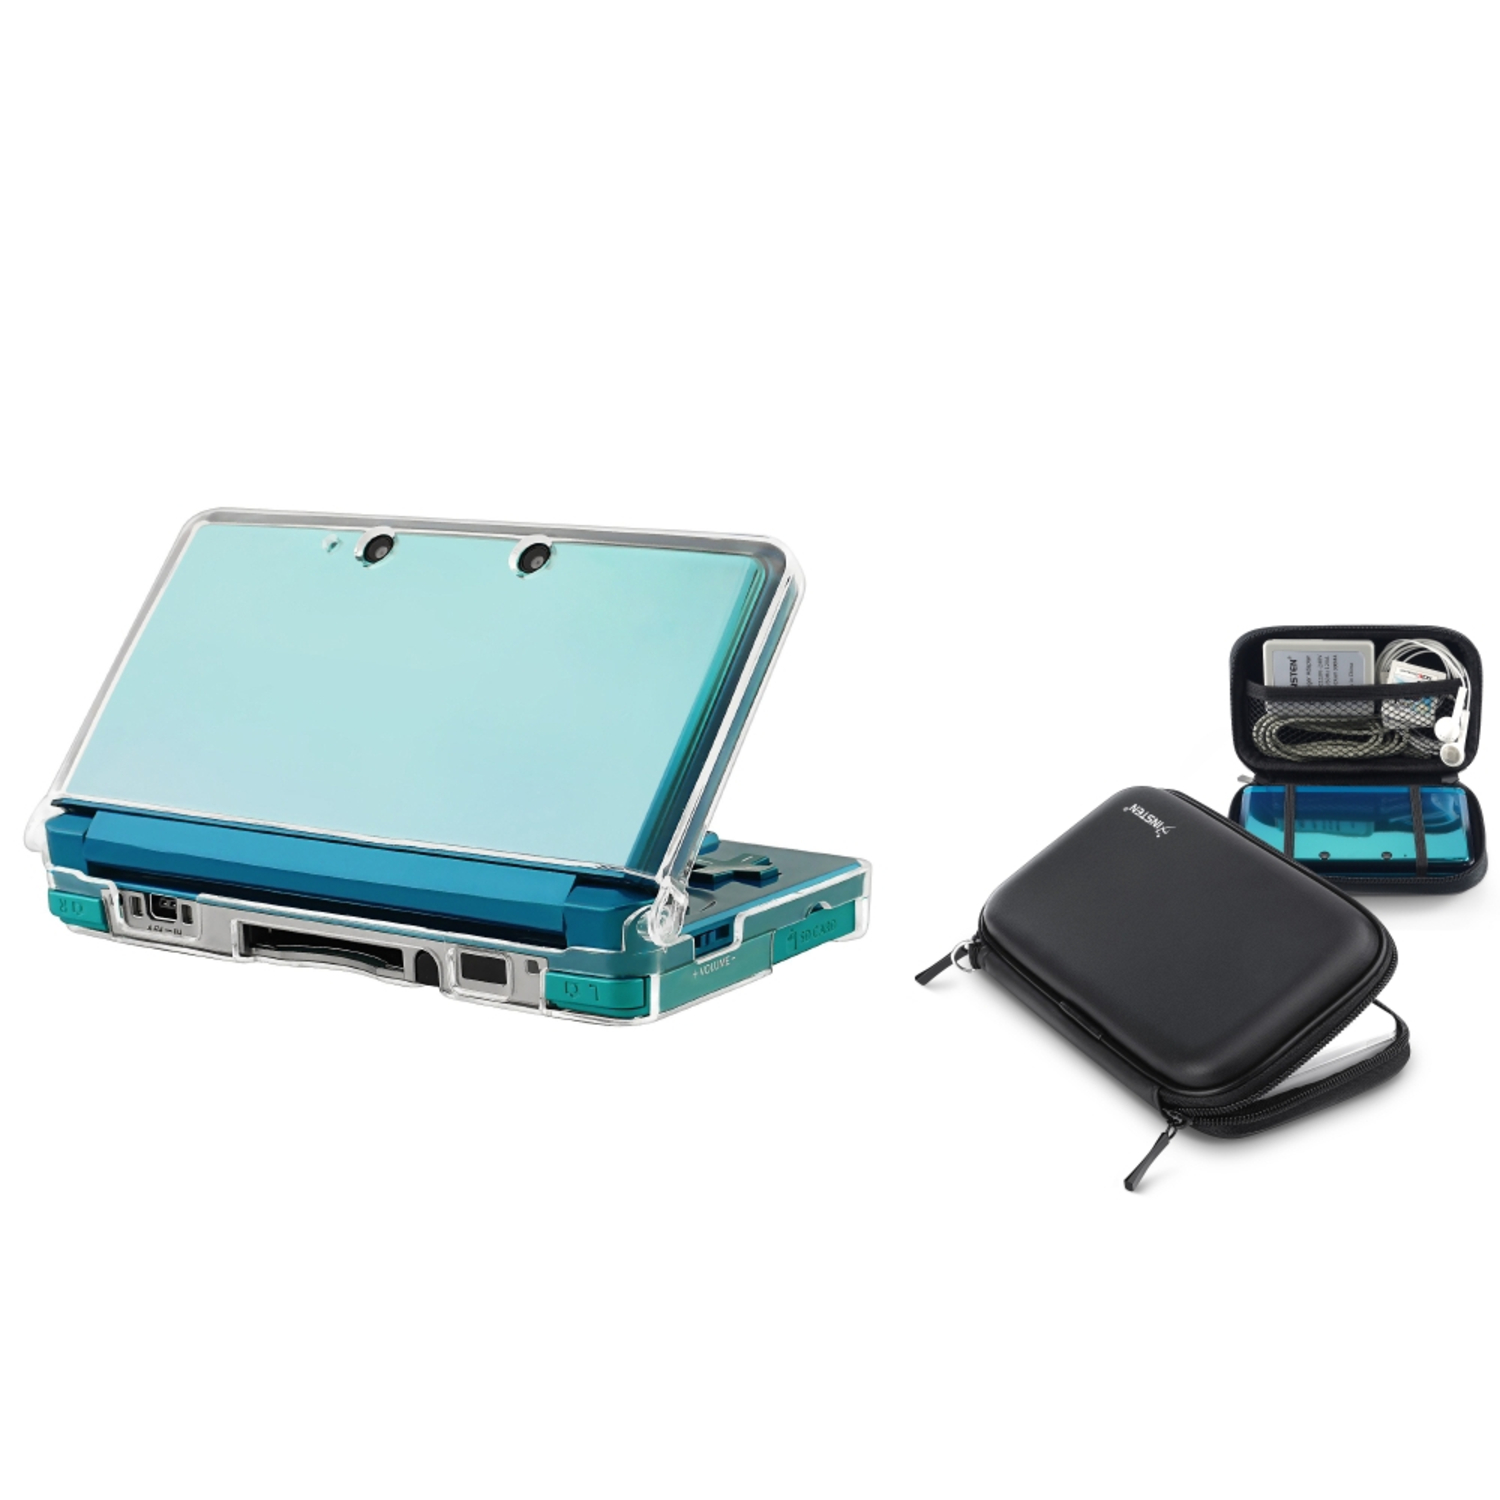 Insten Clear Crystal Shell Case + Black EVA Protective Case Bag Pouch For Nintendo 3DS N3DS (2-in-1 Accessory Bundle)